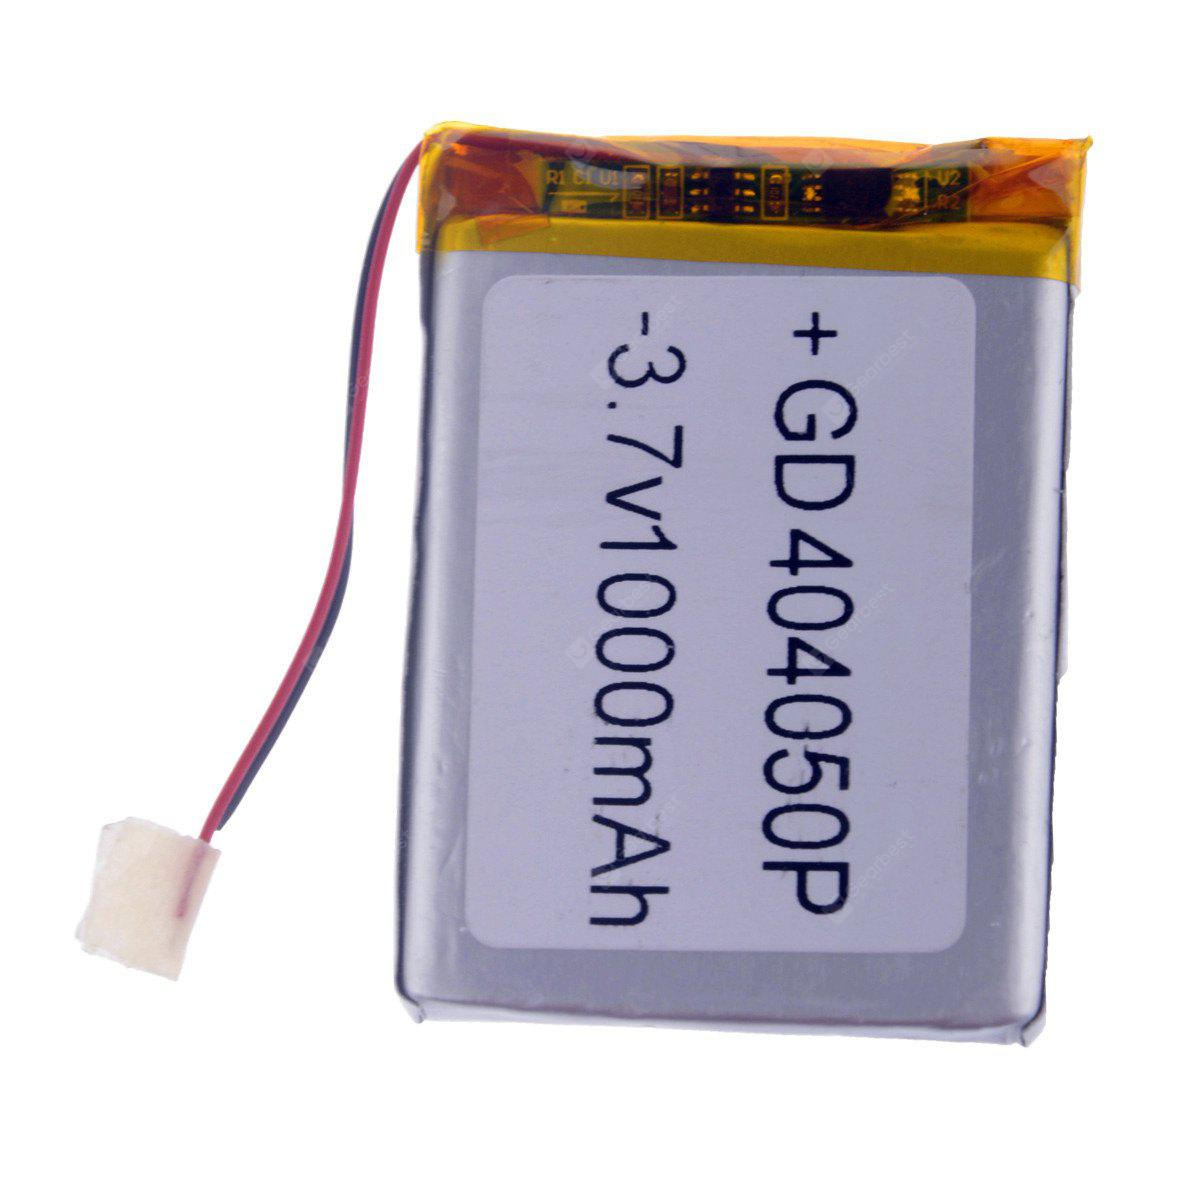 SILVER 404050P Replacement 3.7V 1000mAh Li polymer Battery for Cellphones MP3 MP4 Player